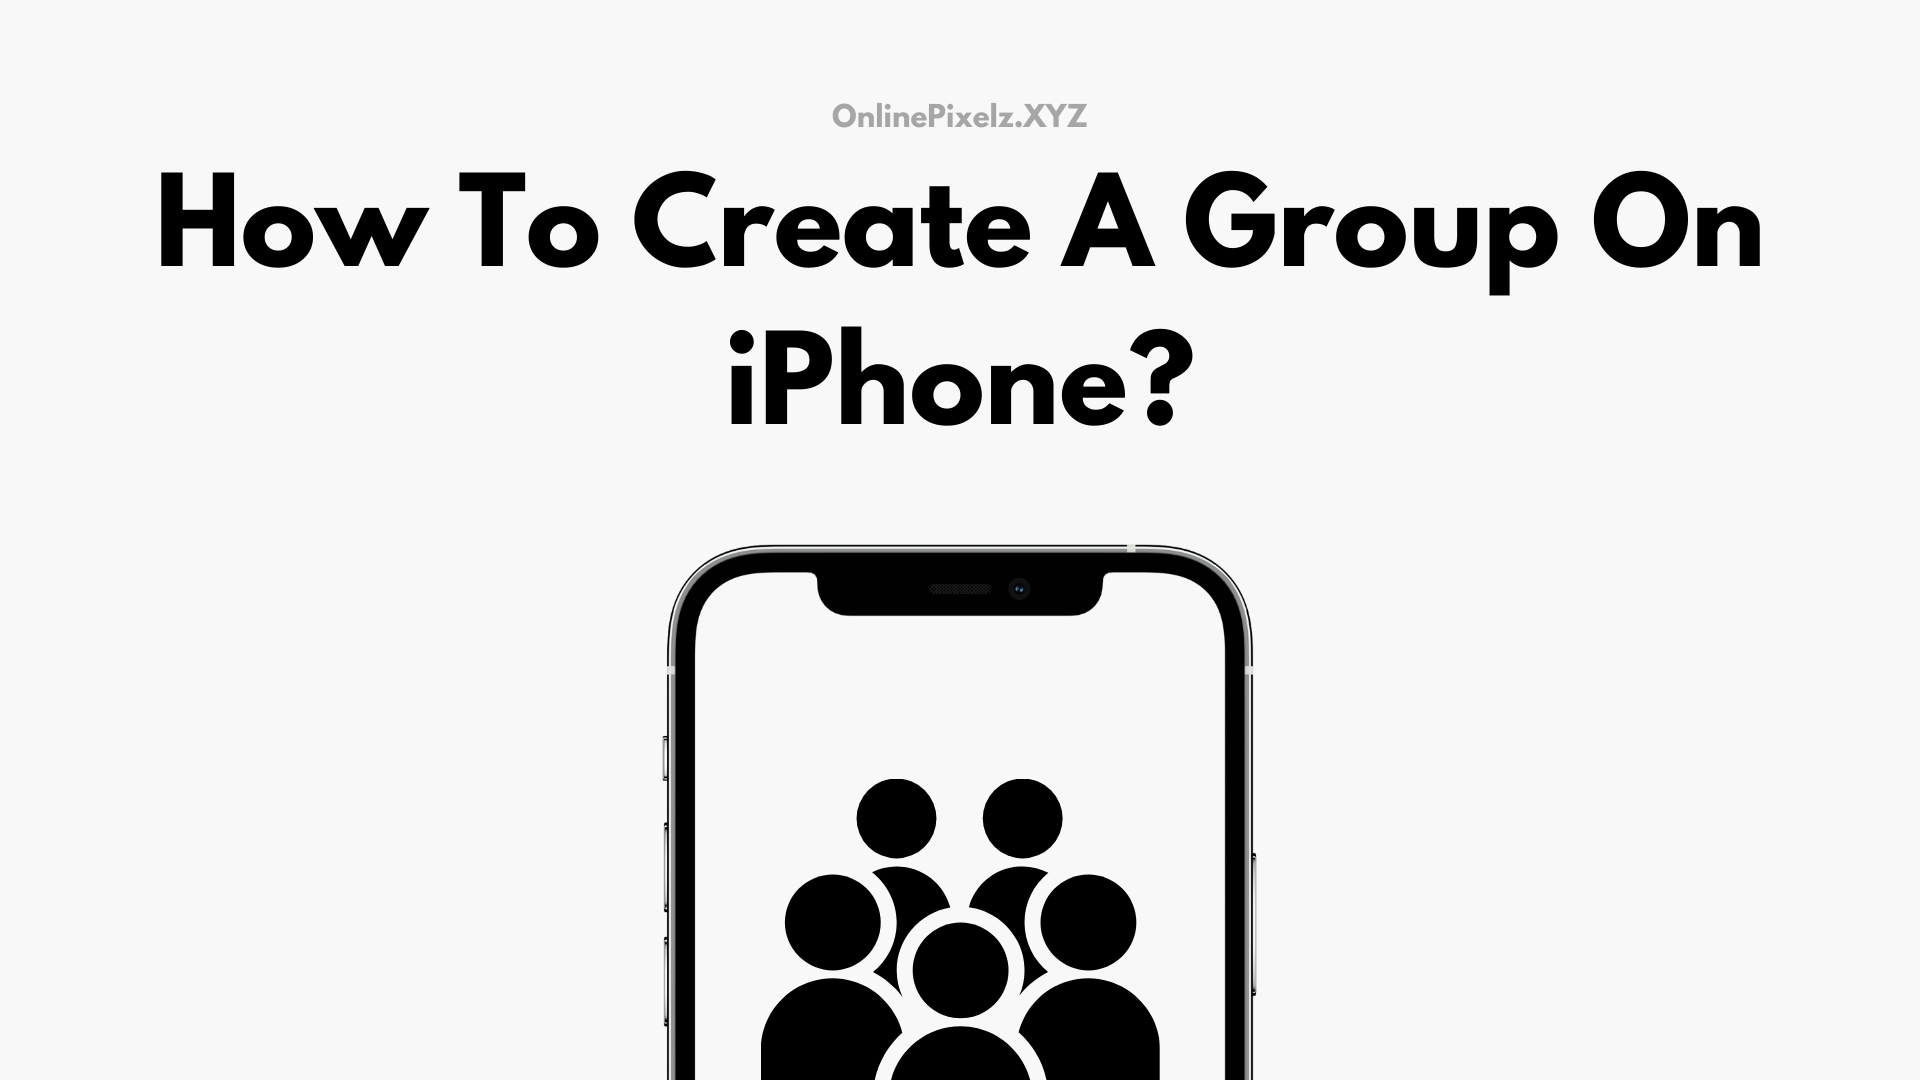 How To Create A Group On iPhone